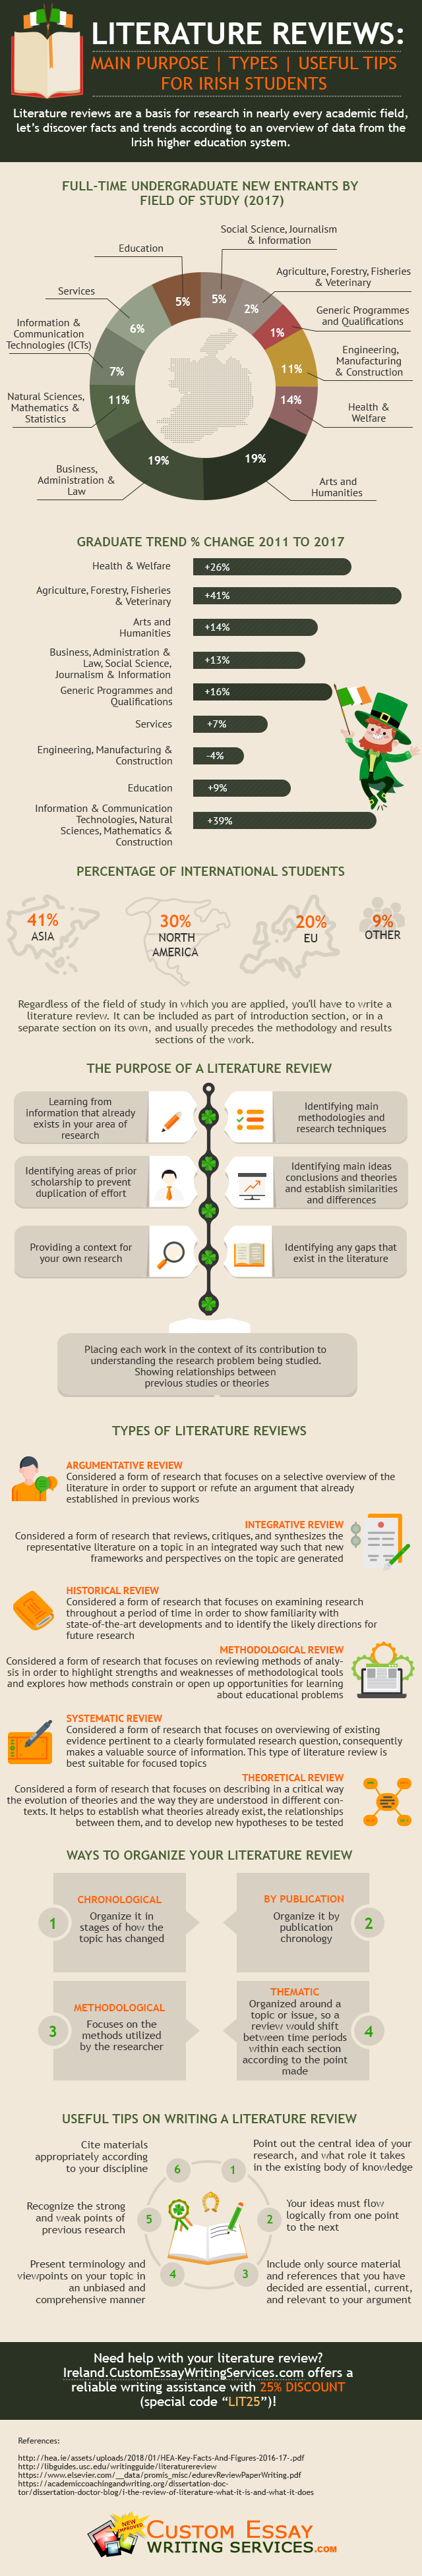 How to Write a Literature Review Ireland #infographic